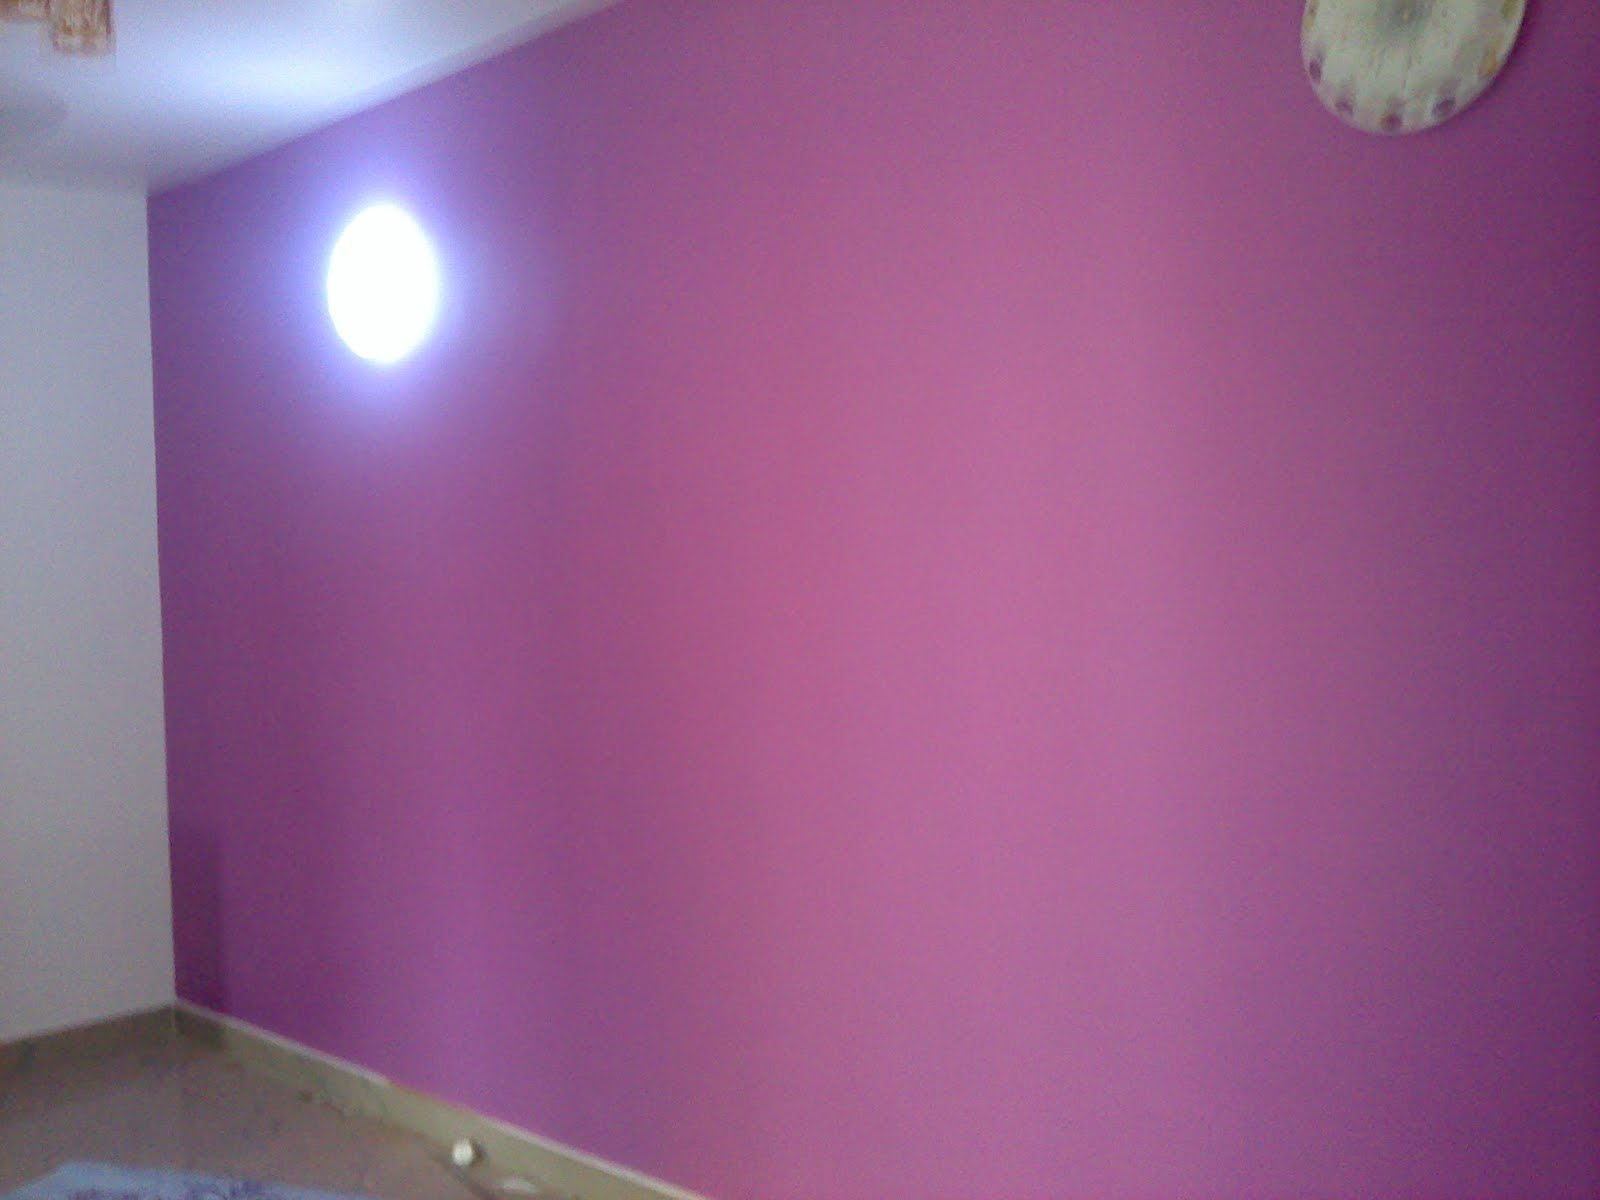 Asian Paints Royale Pink Colour Rooms - Home Decorating Ideas